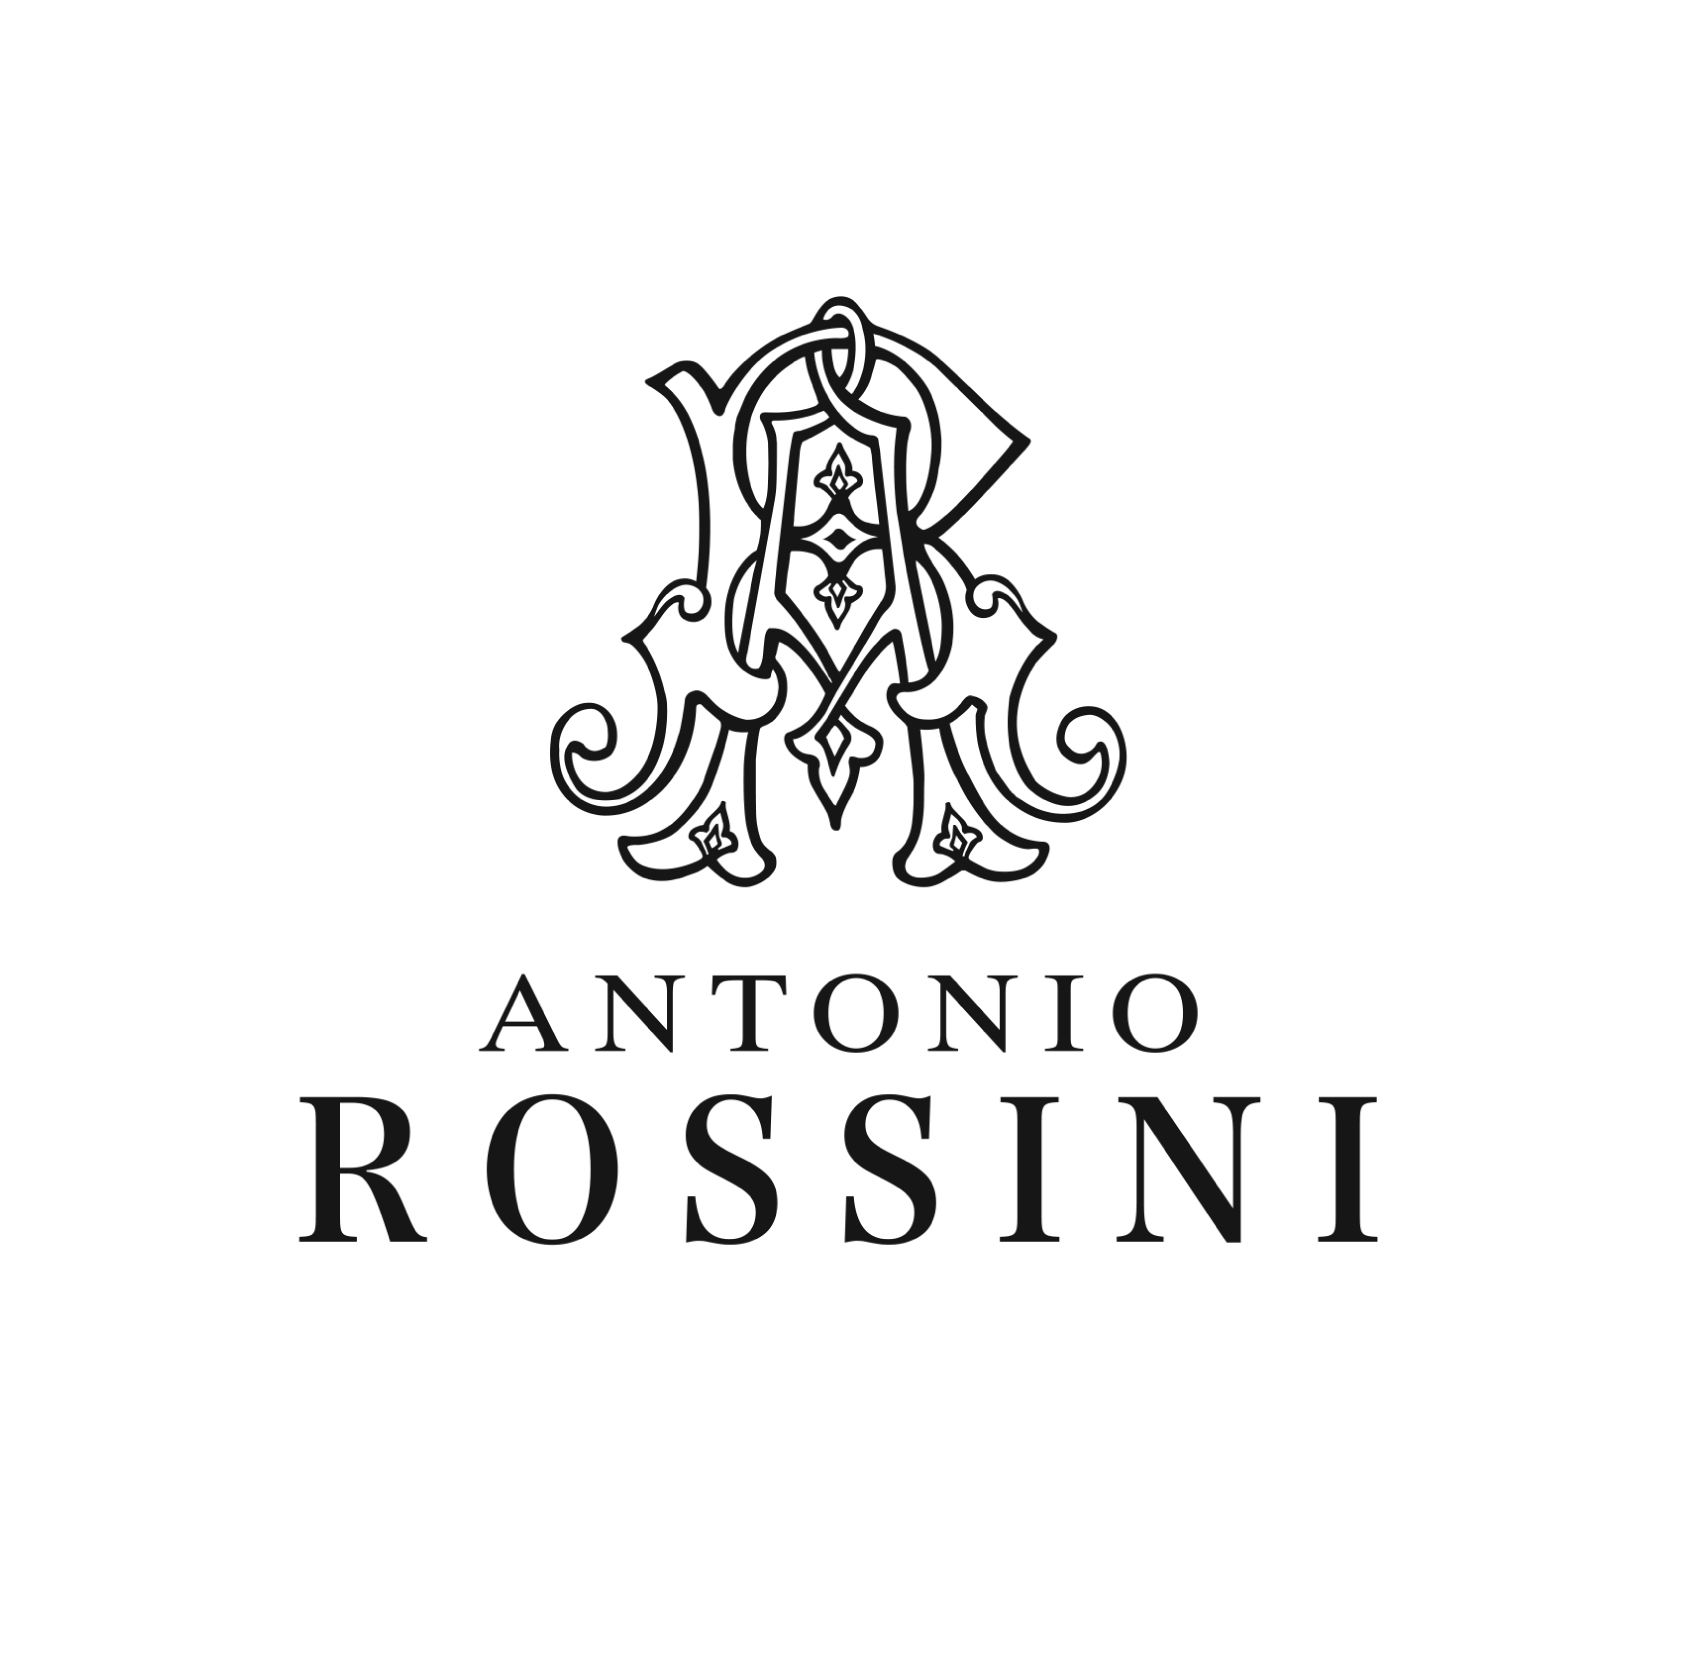 Rossini